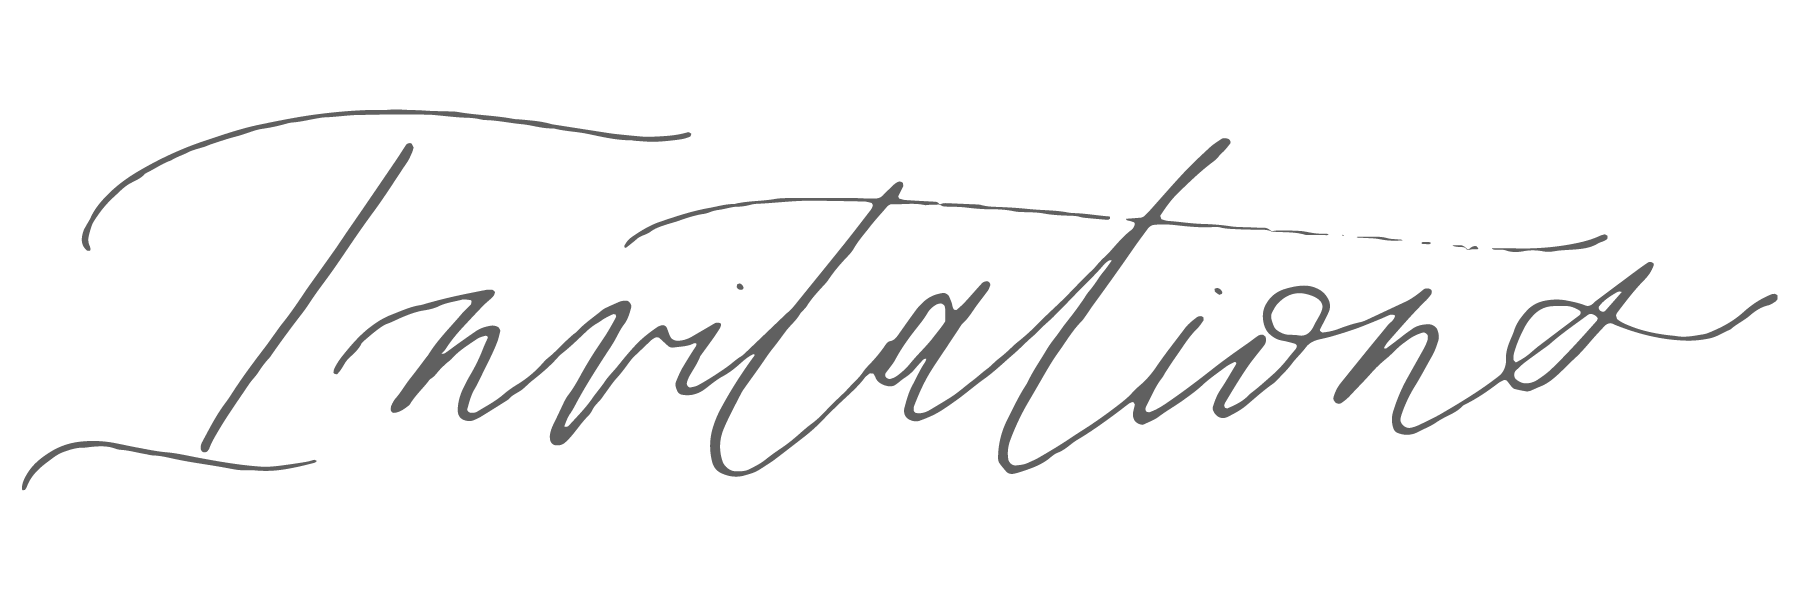 Shotgunning for Love Letters | Artisan Calligraphy and Invitations in Baltimore, MD